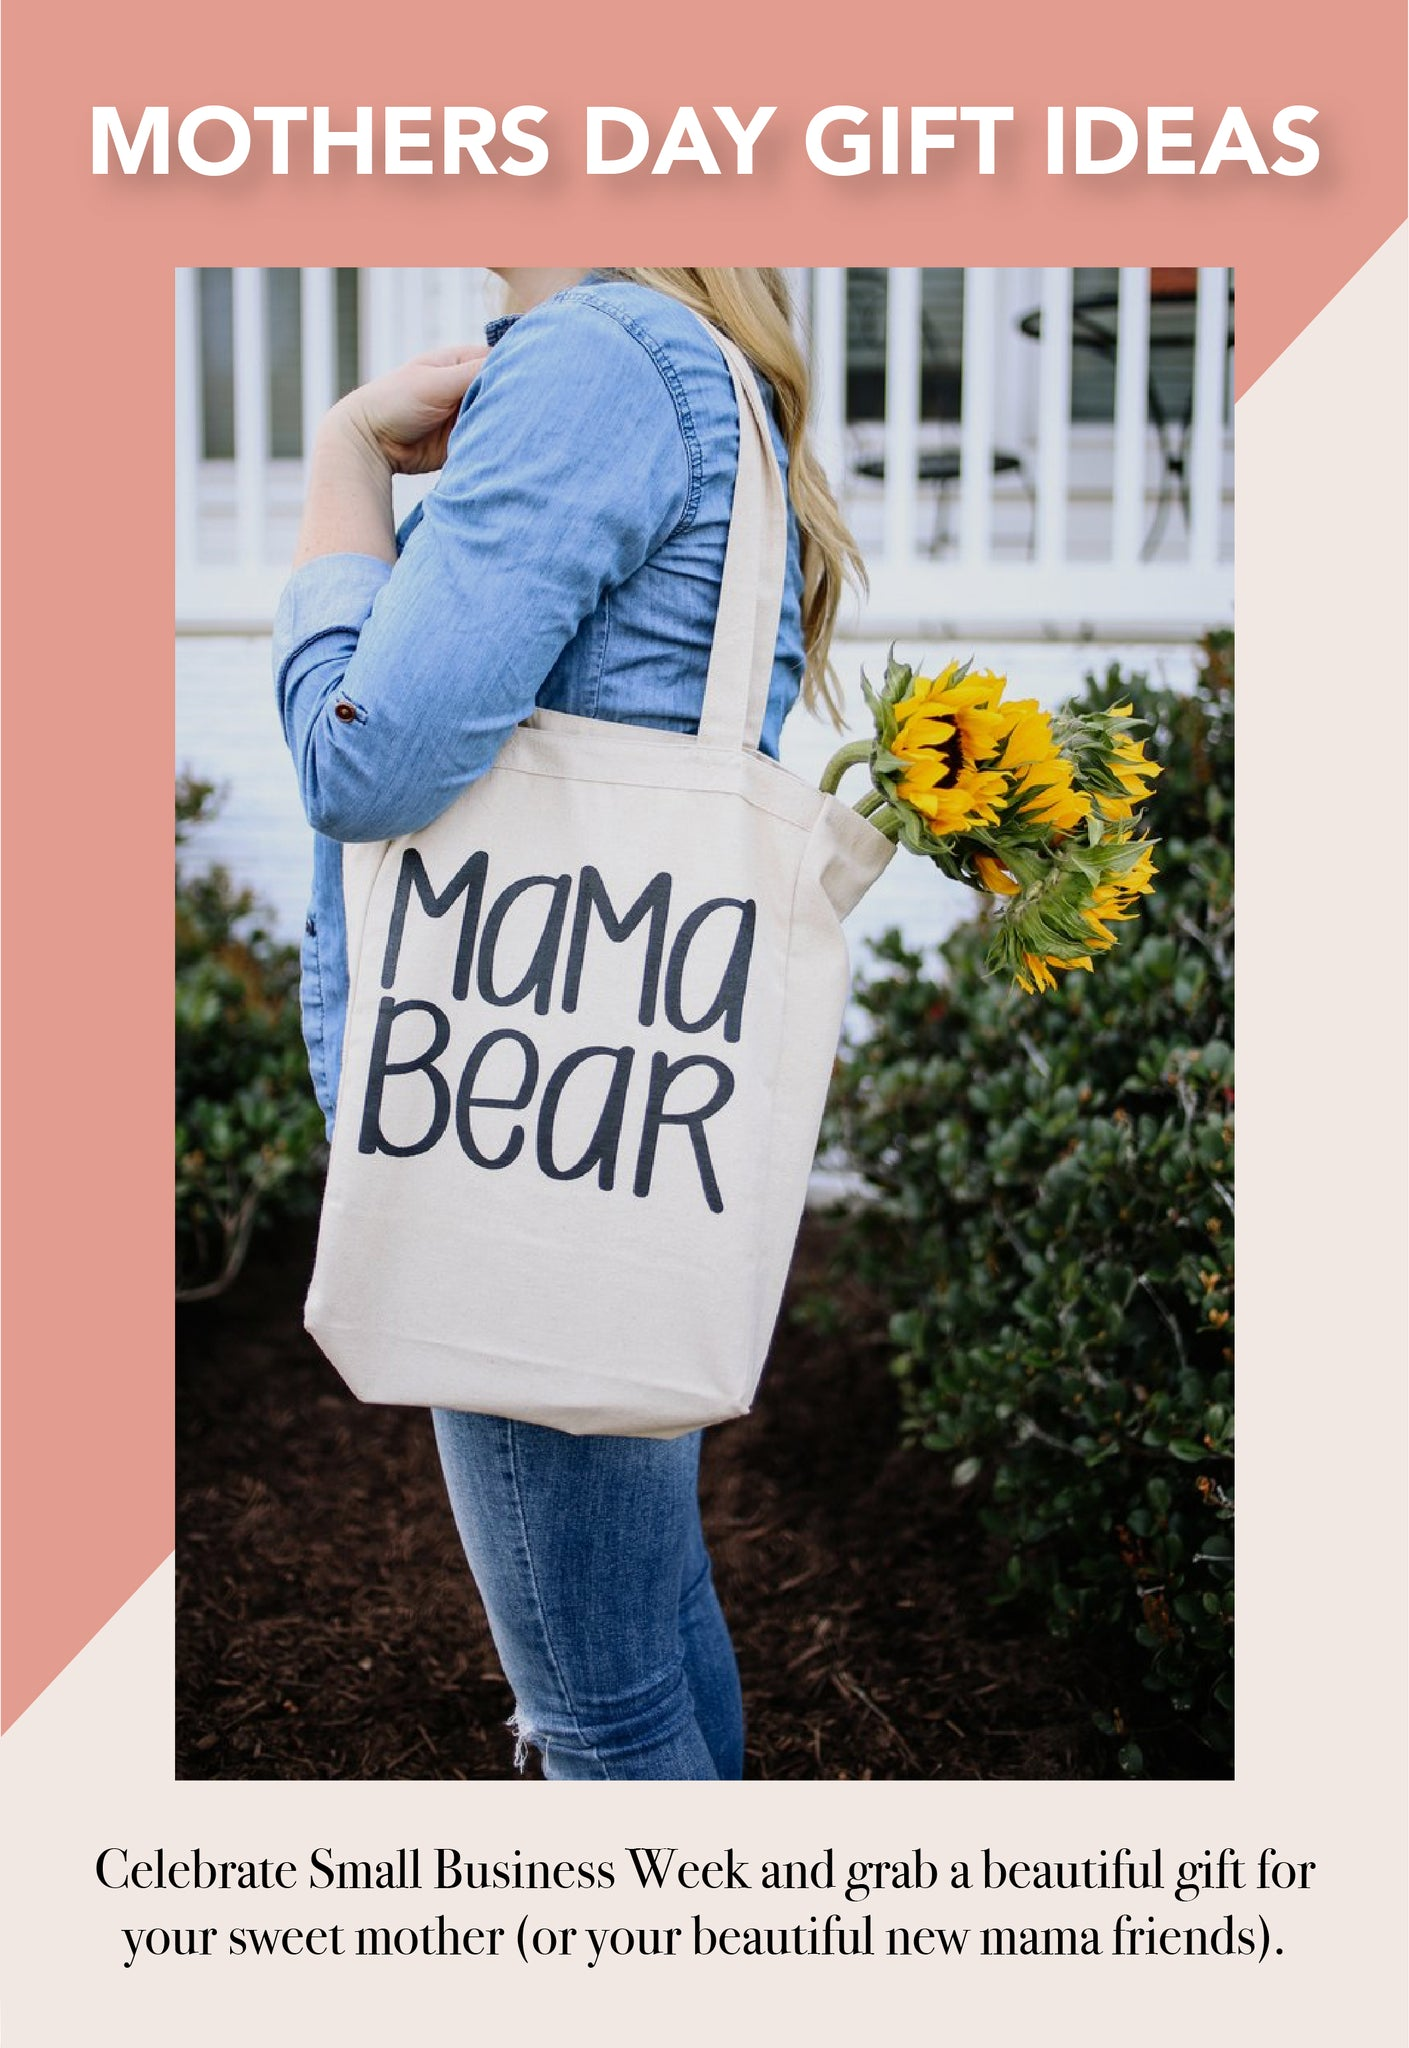 10 Shops You Need To Purchase From This Mother's Day